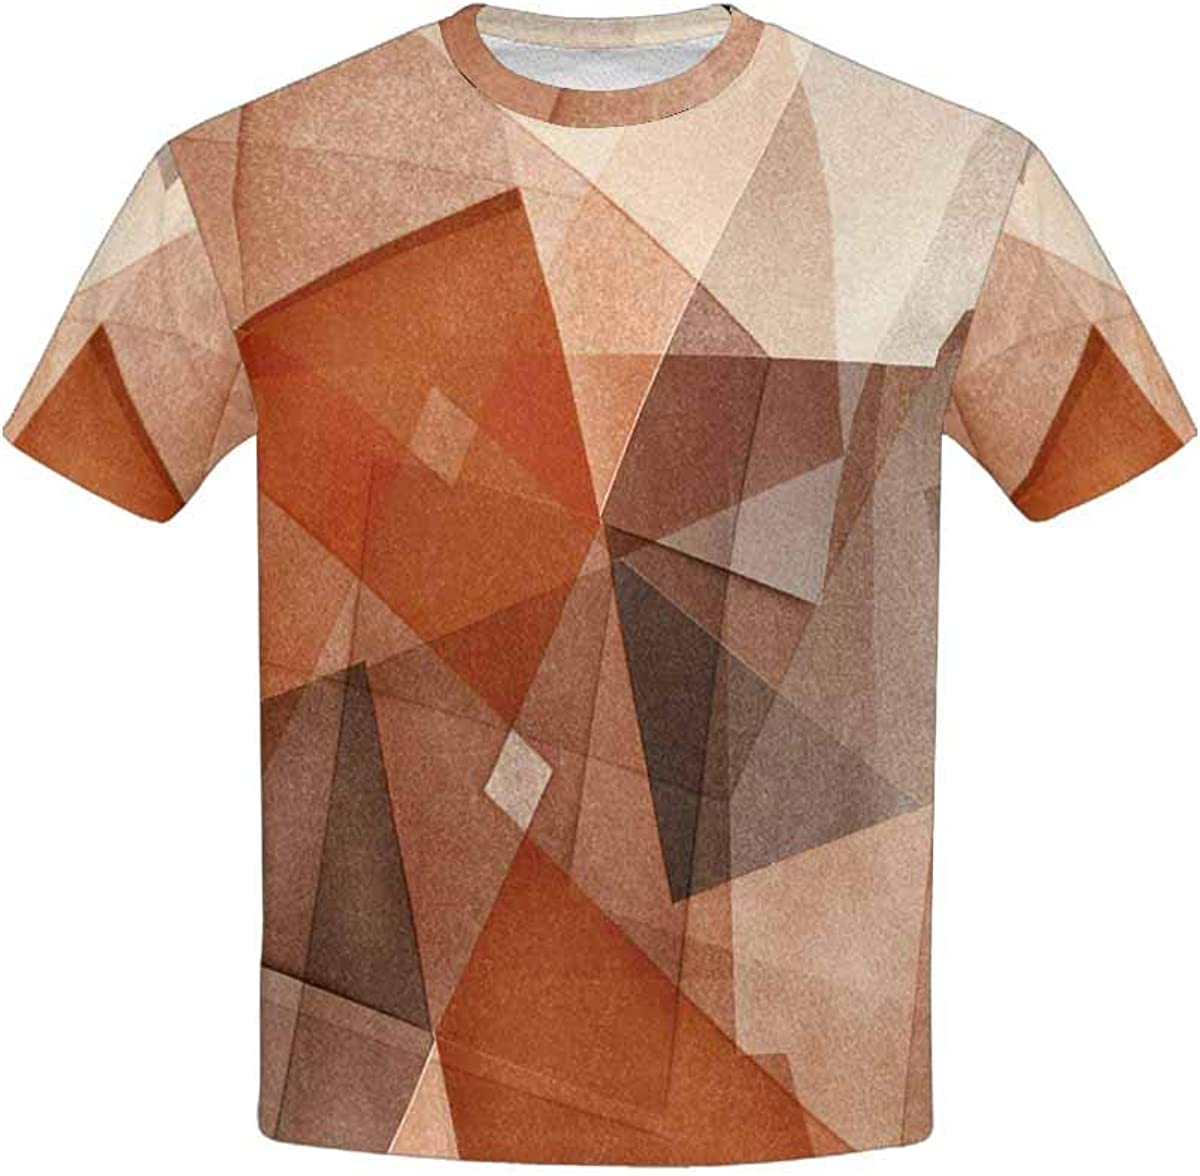 XS-XL INTERESTPRINT Kids Short Sleeve T-Shirt